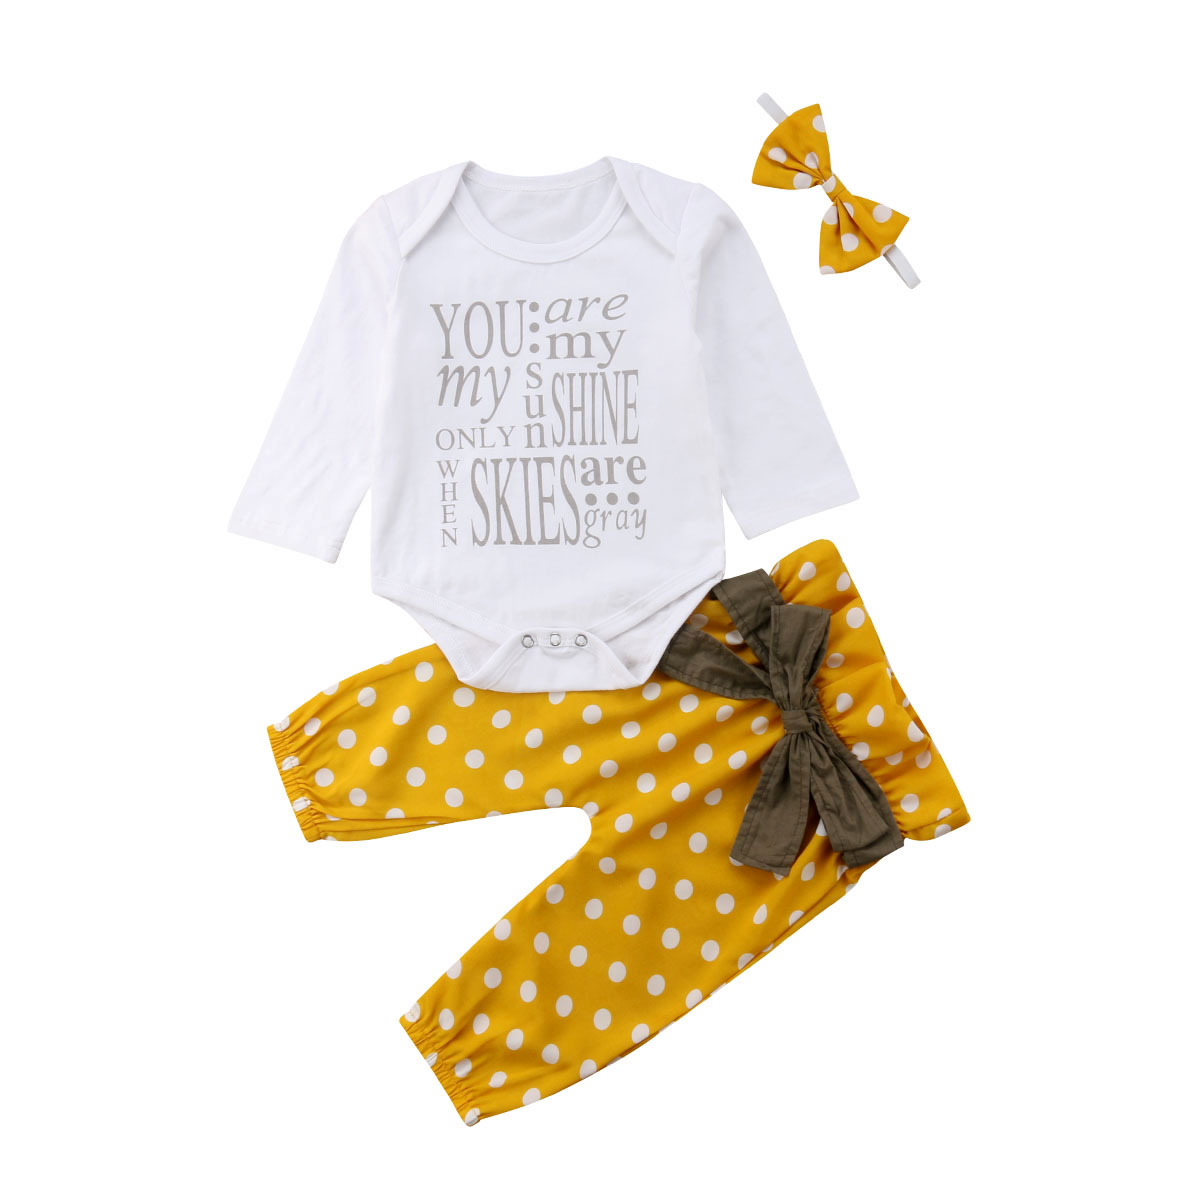 3Pcs Newborn Baby Girl Clothing Cotton Tops Bodysuits Dot Bowknot Pants Headbands Cute Outfits Clothes Baby Girls 0-24M